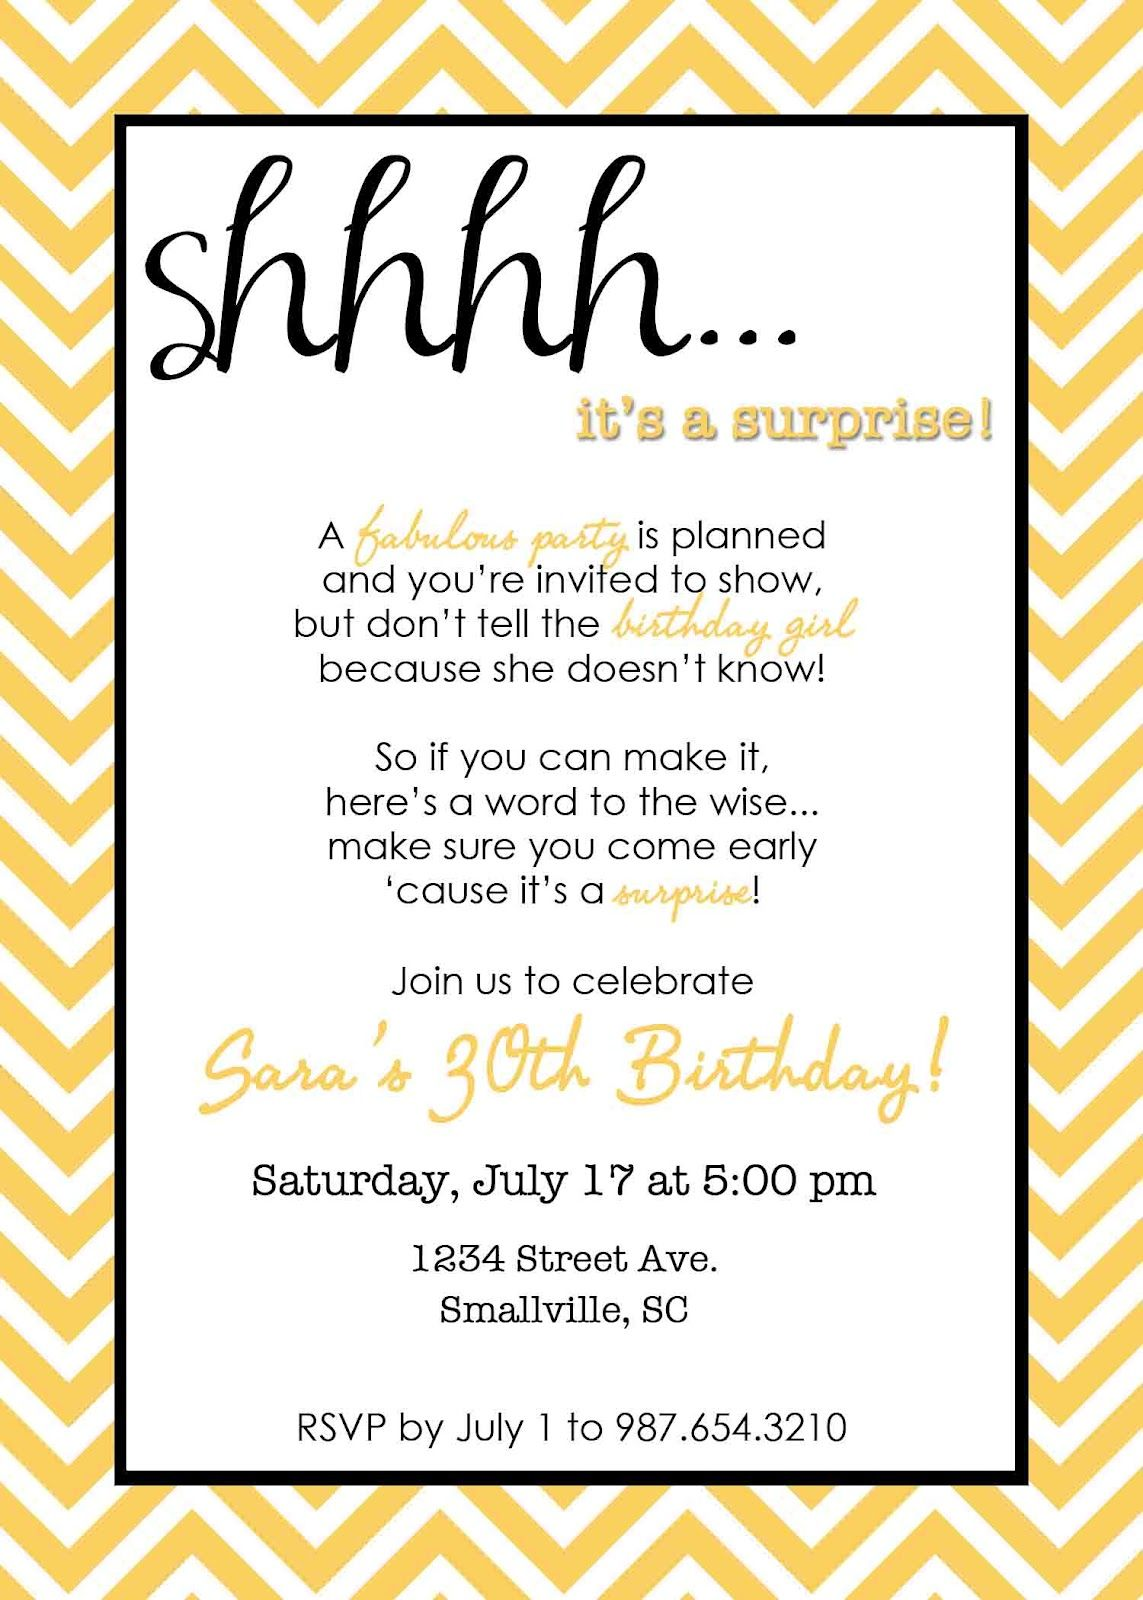 Wording for Surprise Birthday Party Invitations | Free Printable ...